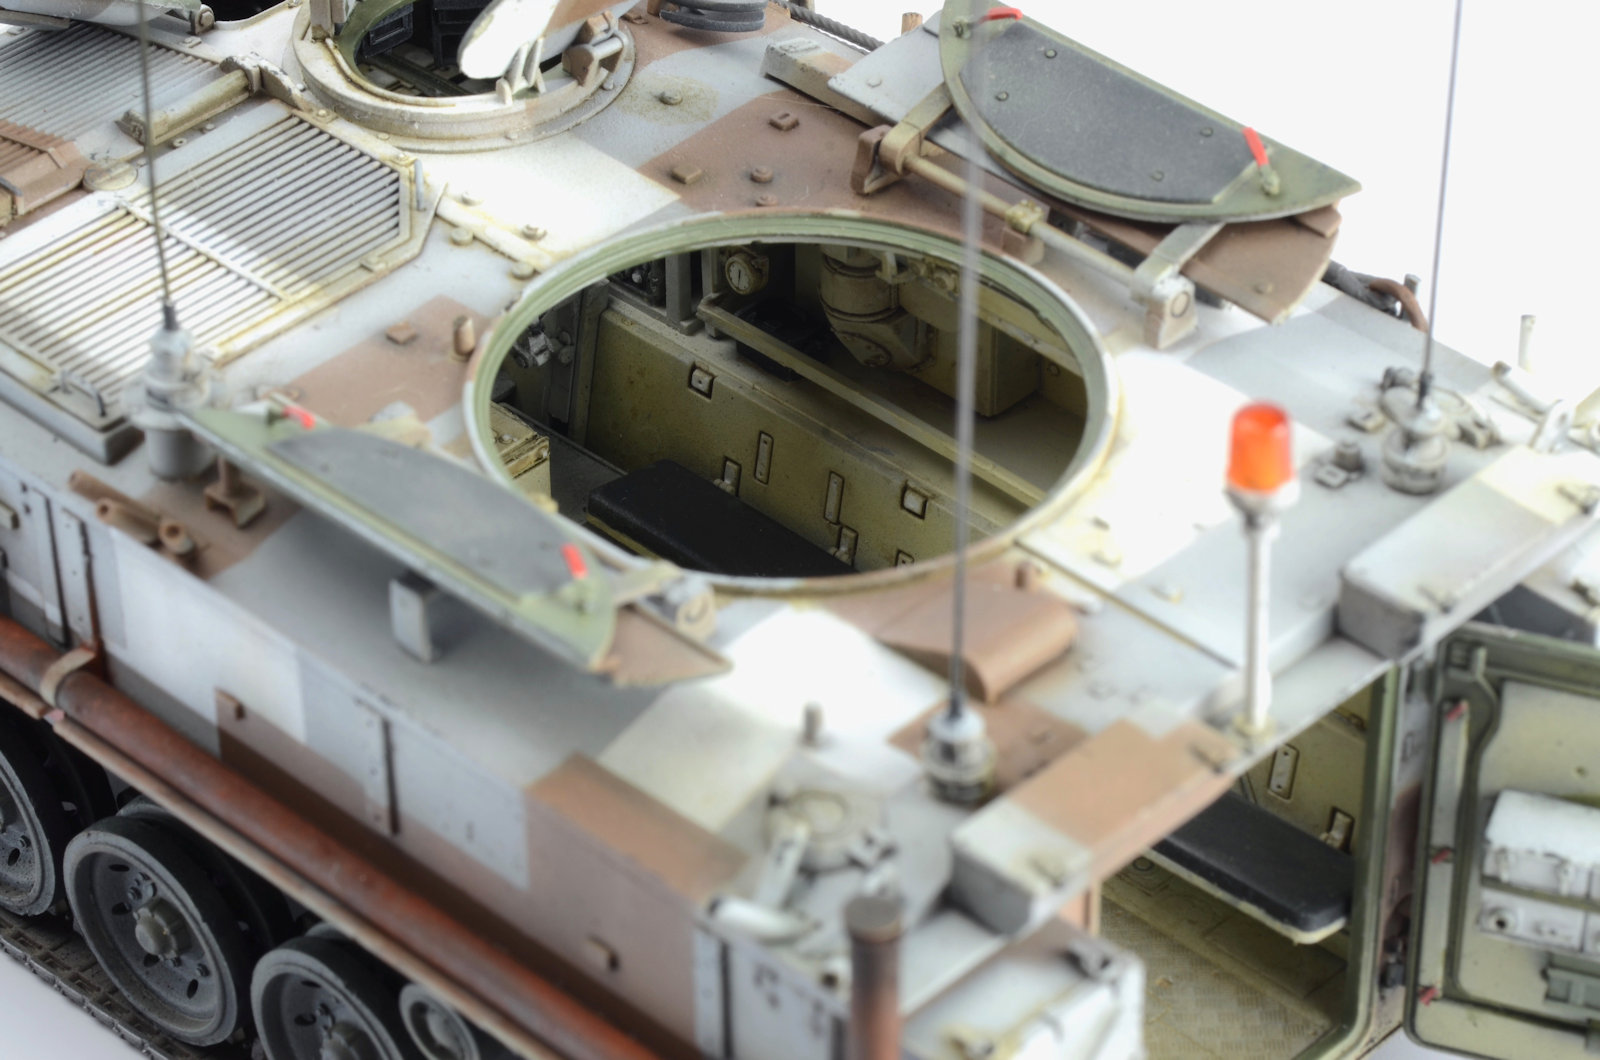 The Modelling News: Painting Guide: FV432 Mk 2/1, w/Interior in the